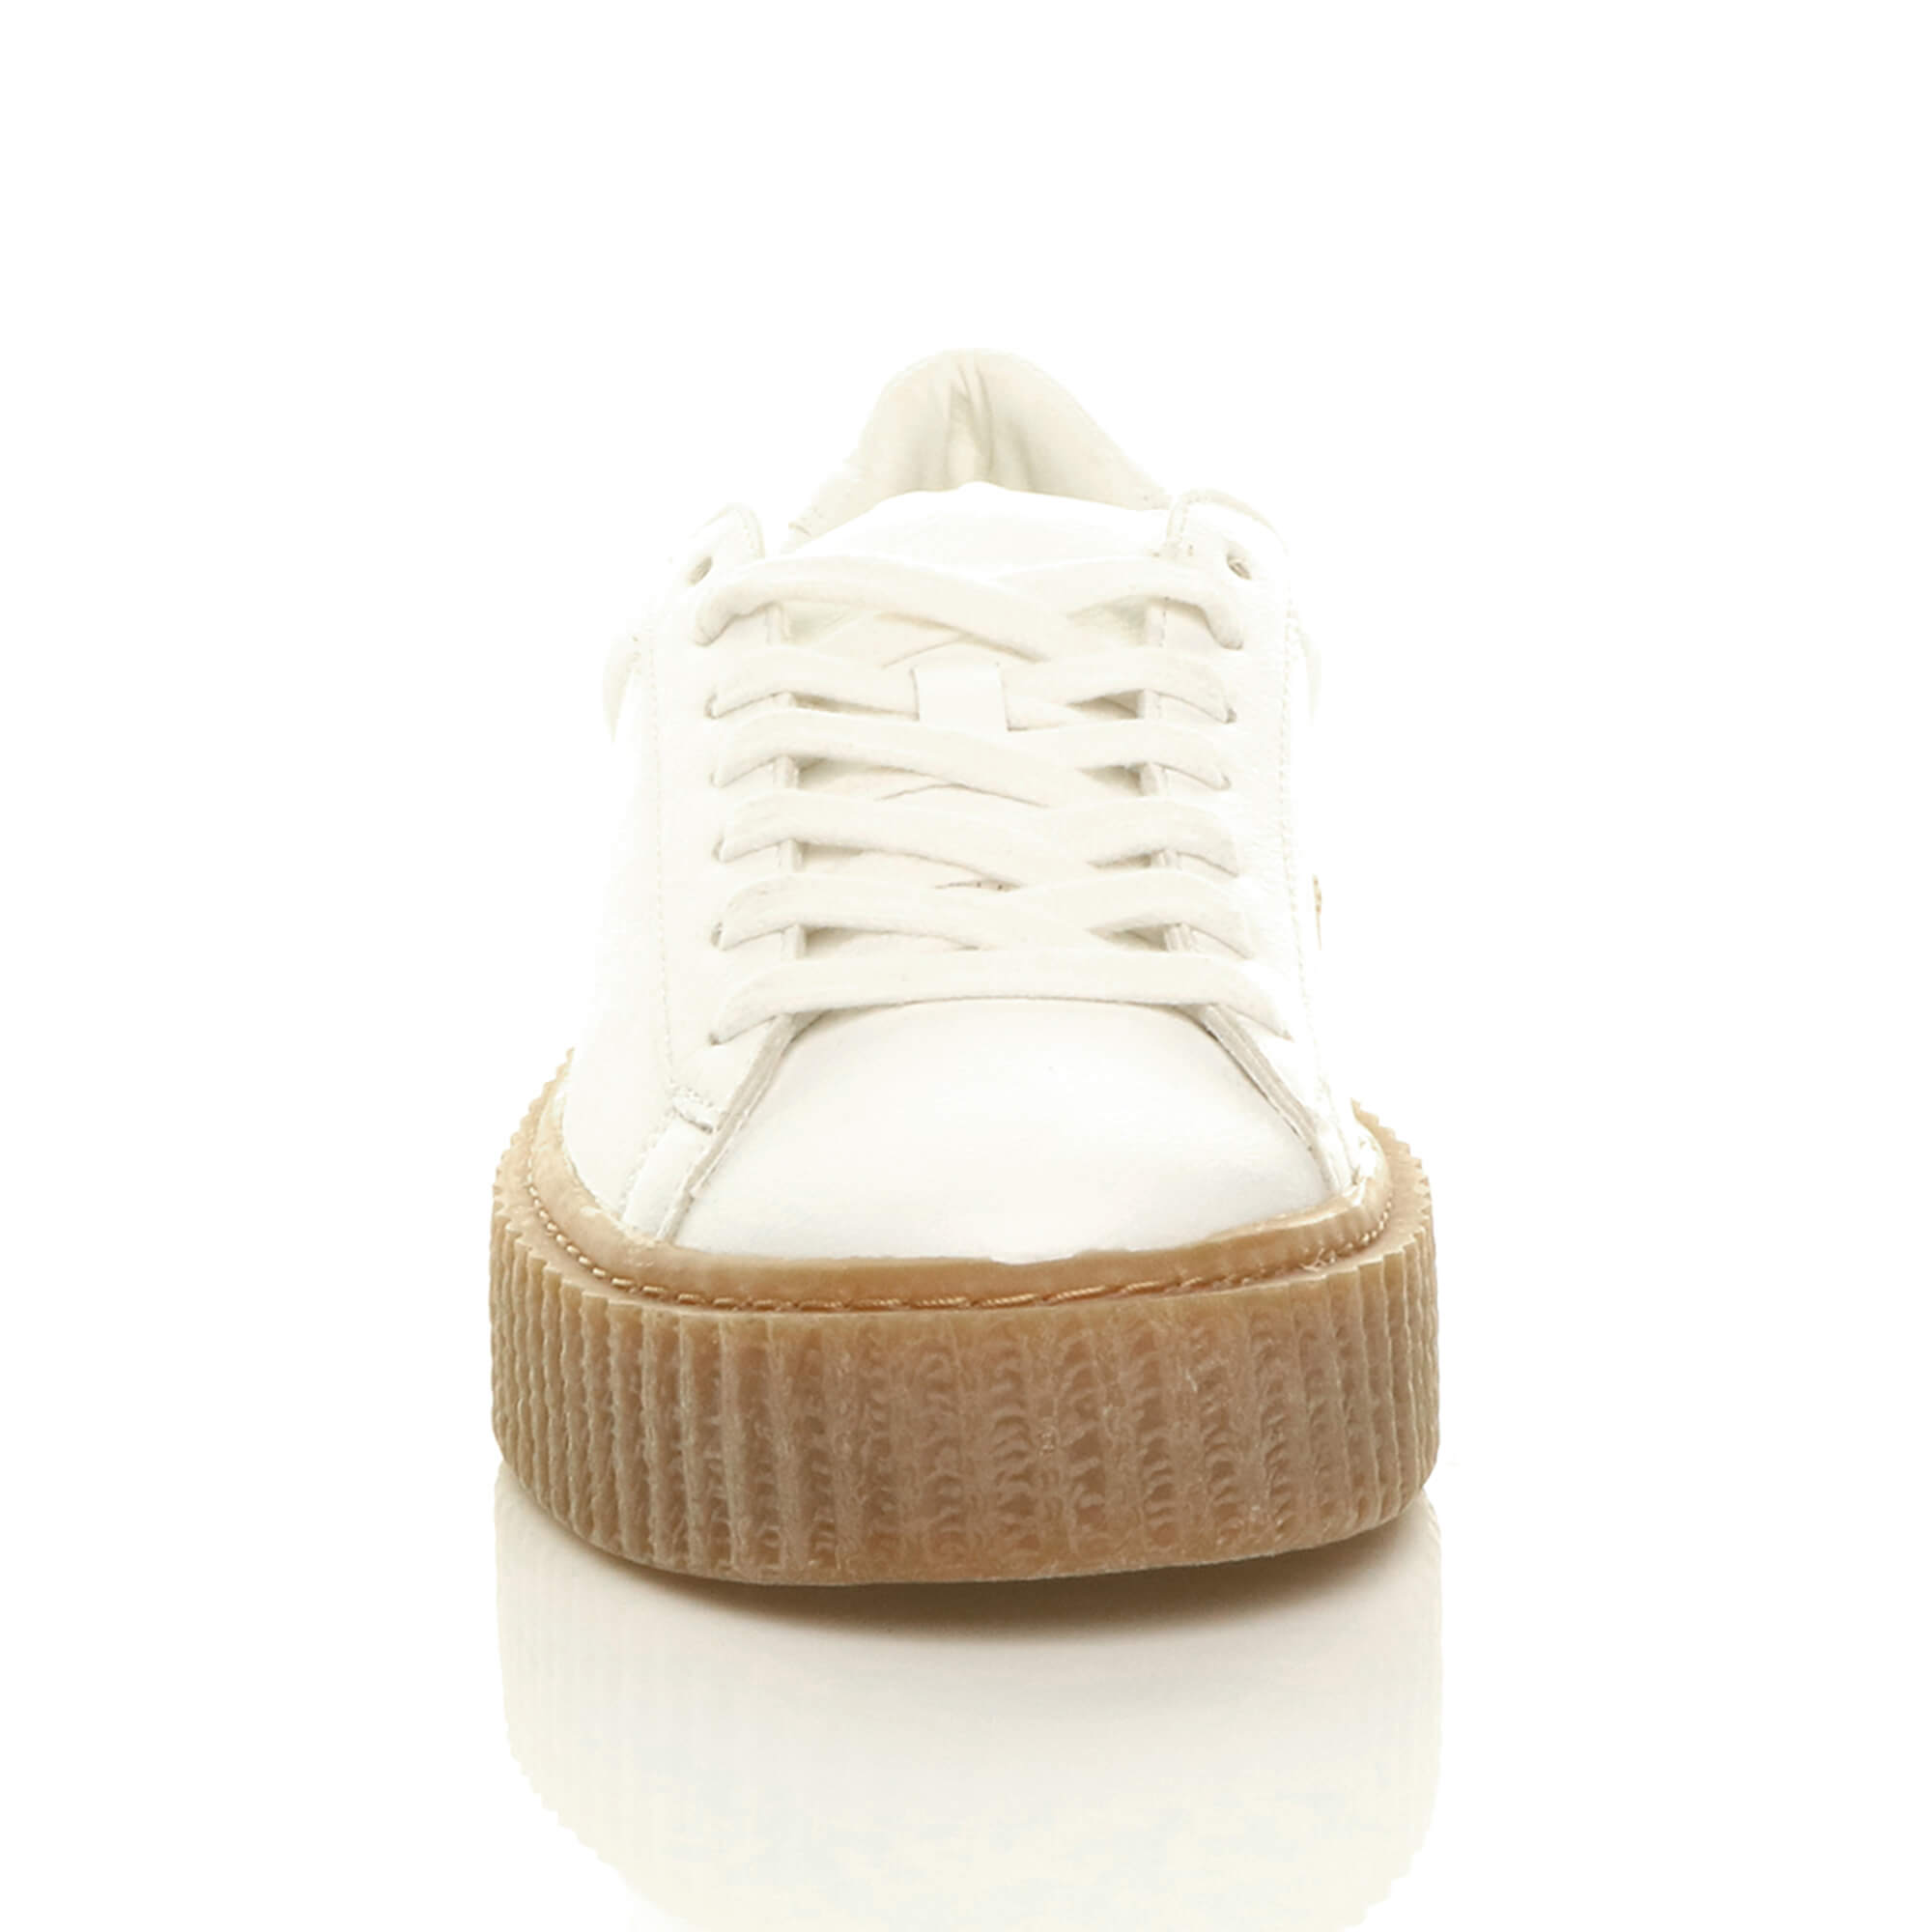 WOMENS LADIES PLATFORM FLATFORM WEDGE CHUNKY LACE UP TRAINERS CREEPERS SIZE